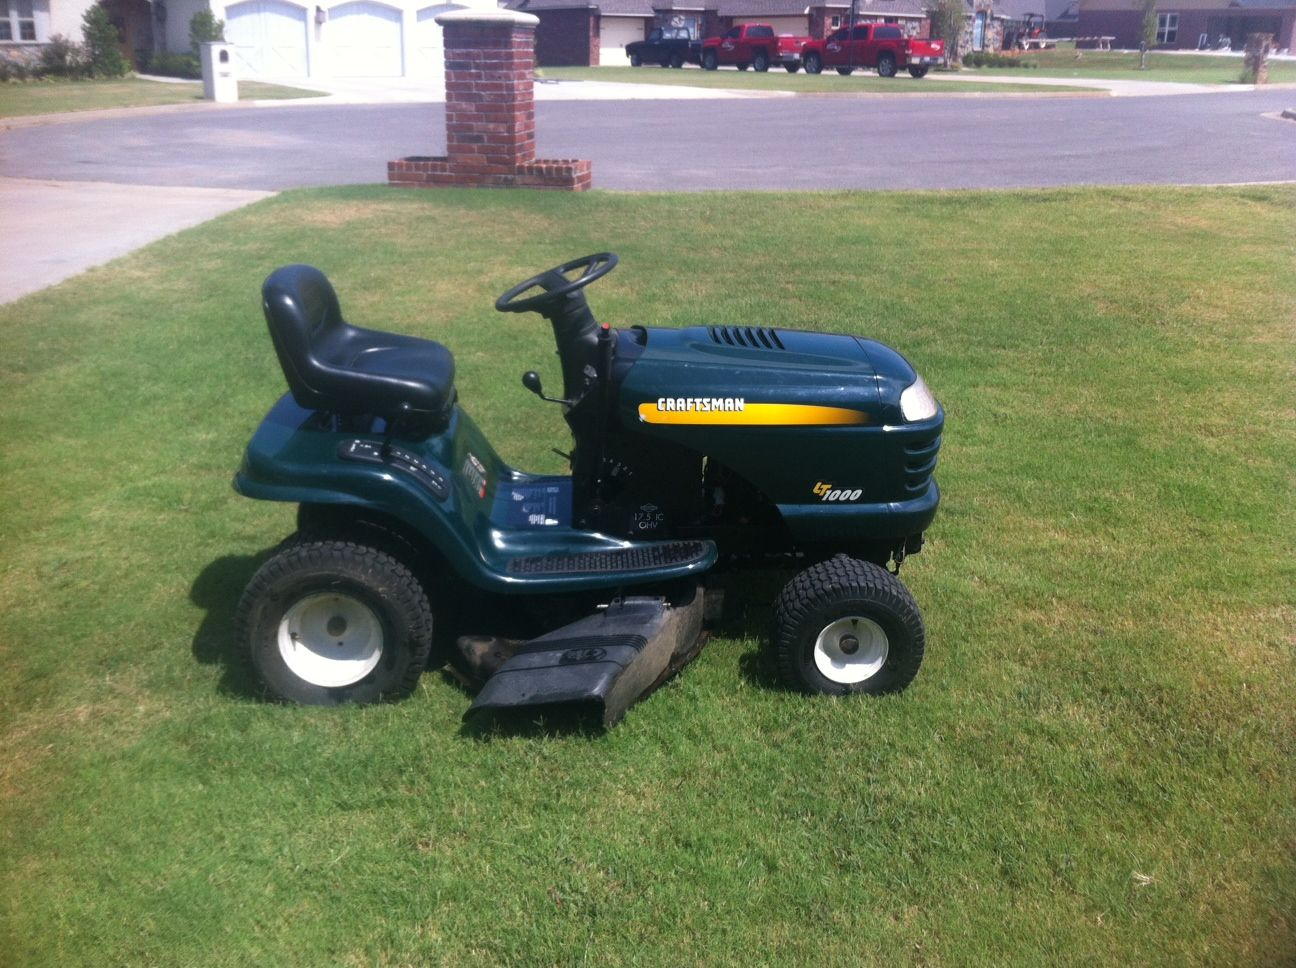 Craftsman Lt1000 Tractor In Fort Gibson S Garage Sale In Fort Gibson Ok For 150 00 This Mower Is Currently Not Running S Fort Gibson Garage Sales Tractors